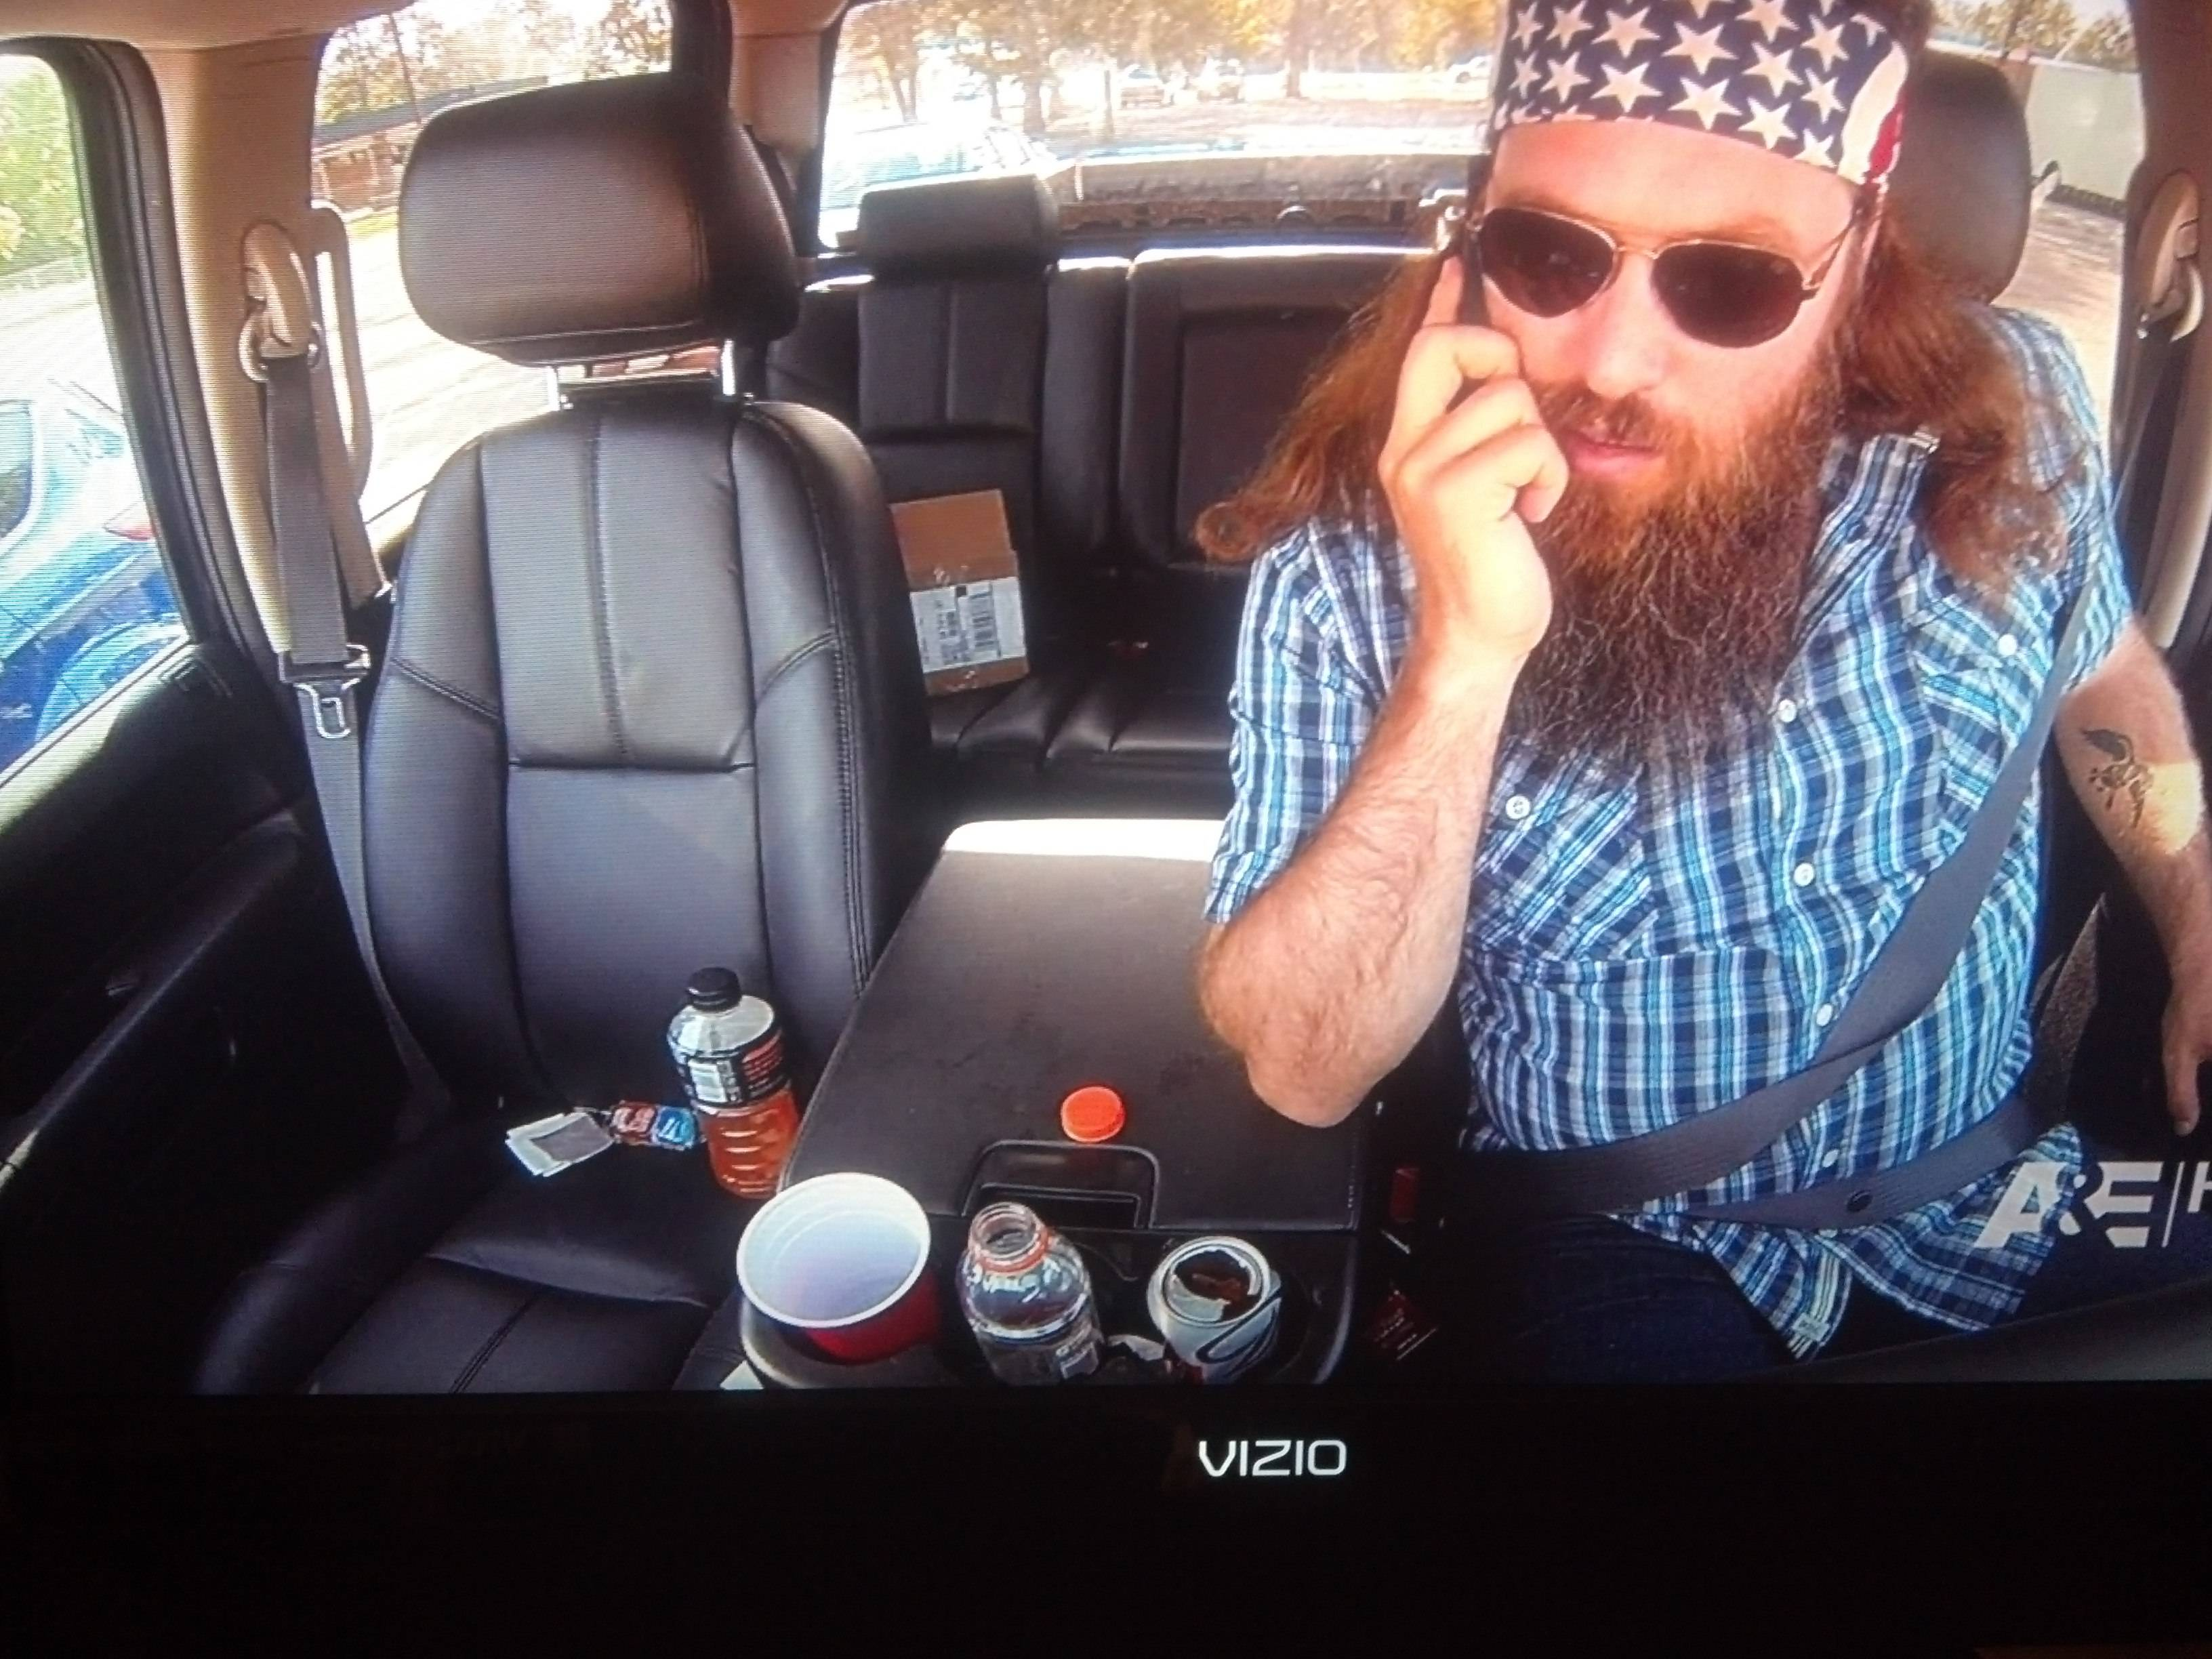 Caught this on DuckDynasty Looks like a spitter made out of a 3264x2448